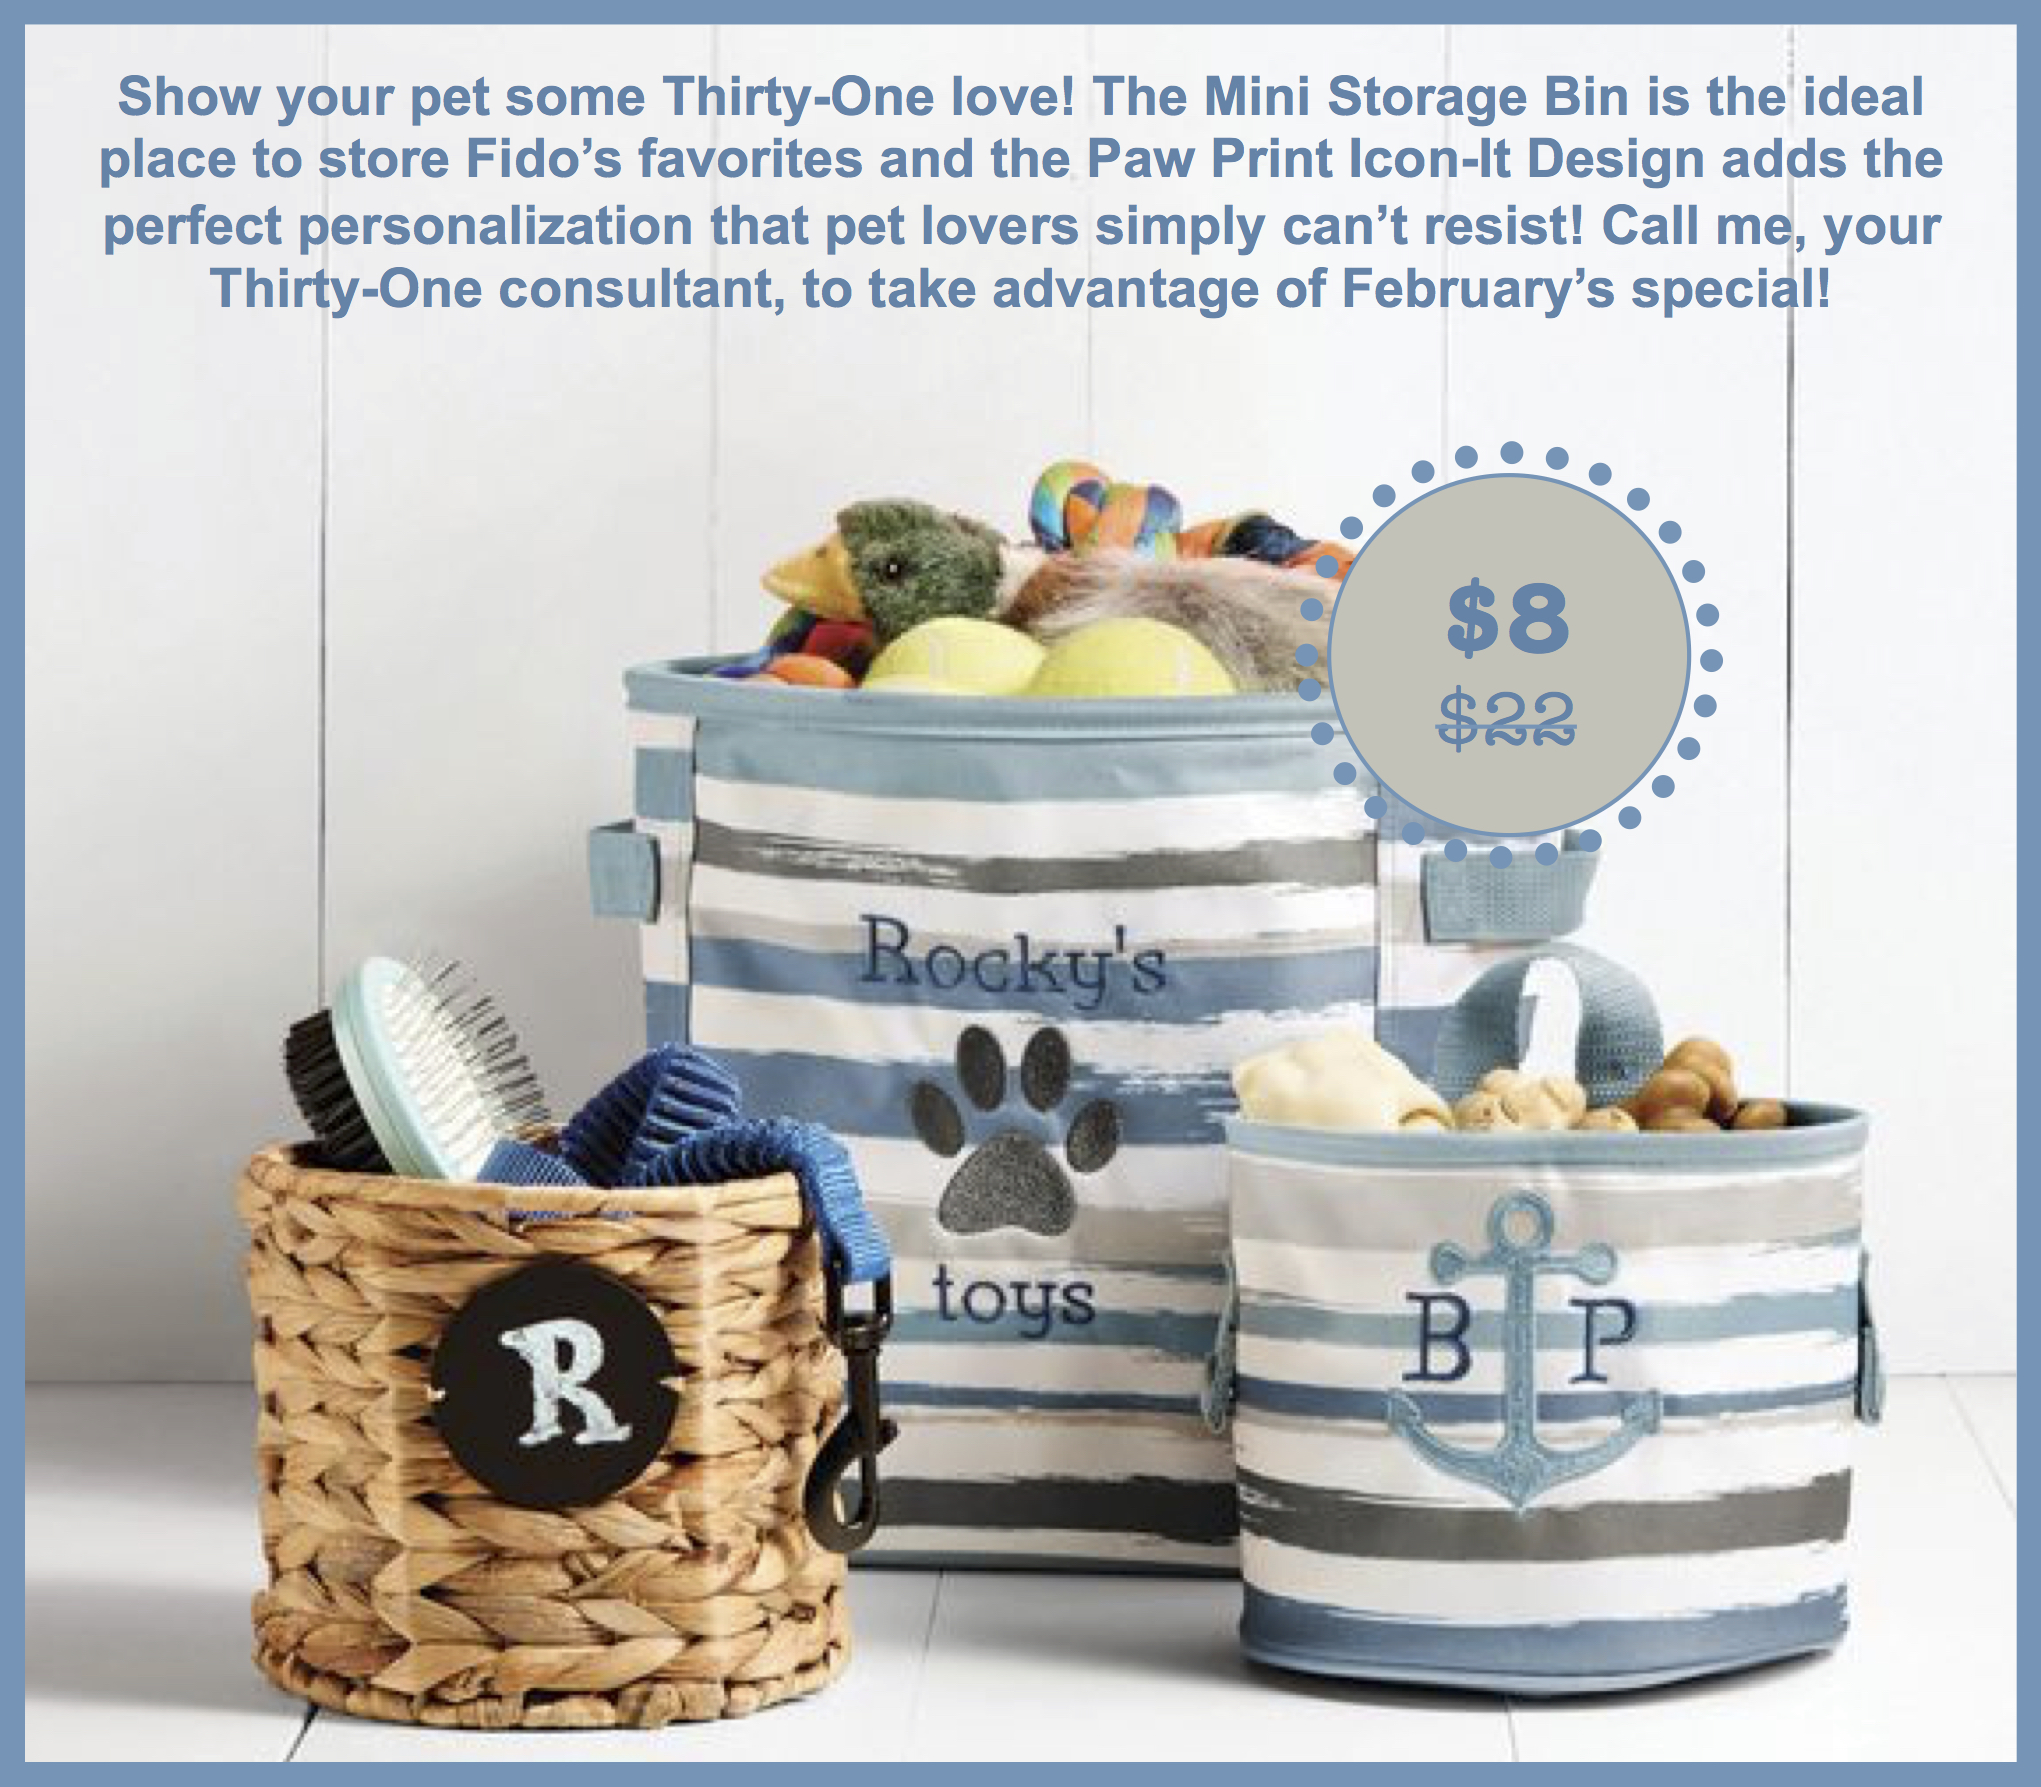 Mini Storage Bin Thirty One Gifts